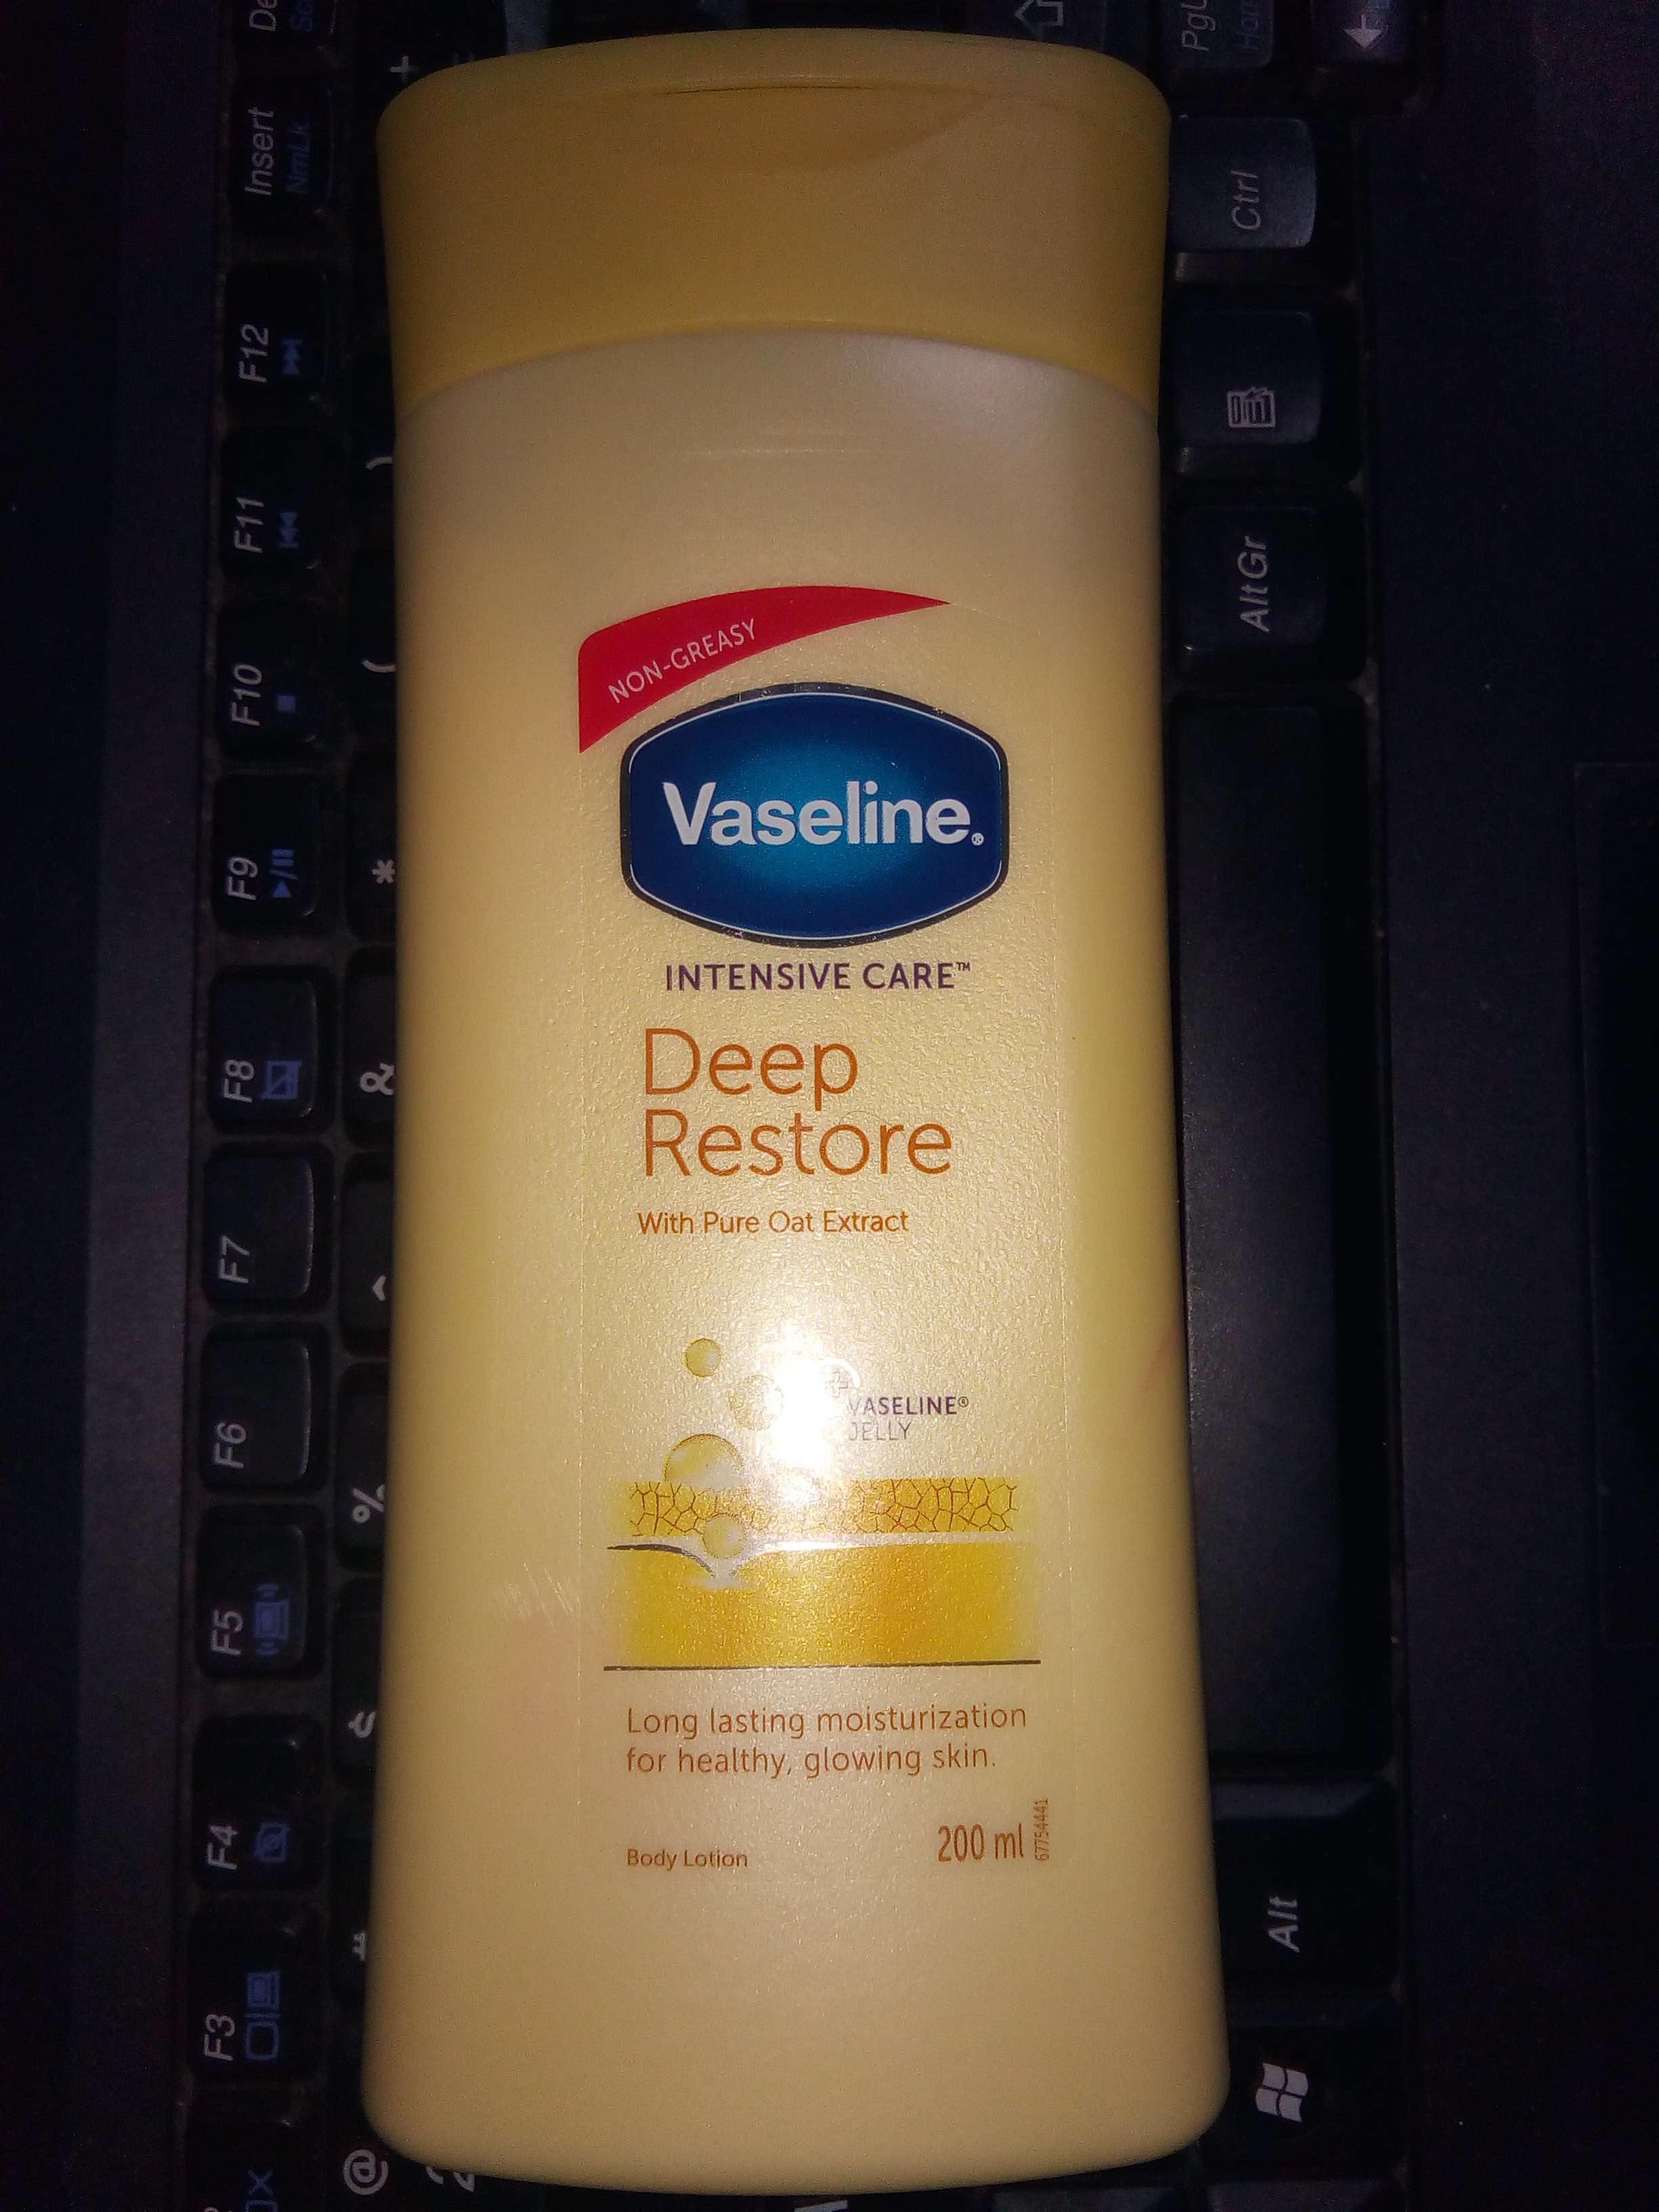 Vaseline Intensive Care Deep Restore Body Lotion-Vaseline Intensive Care Deep Restore Body Lotion-By aneesha